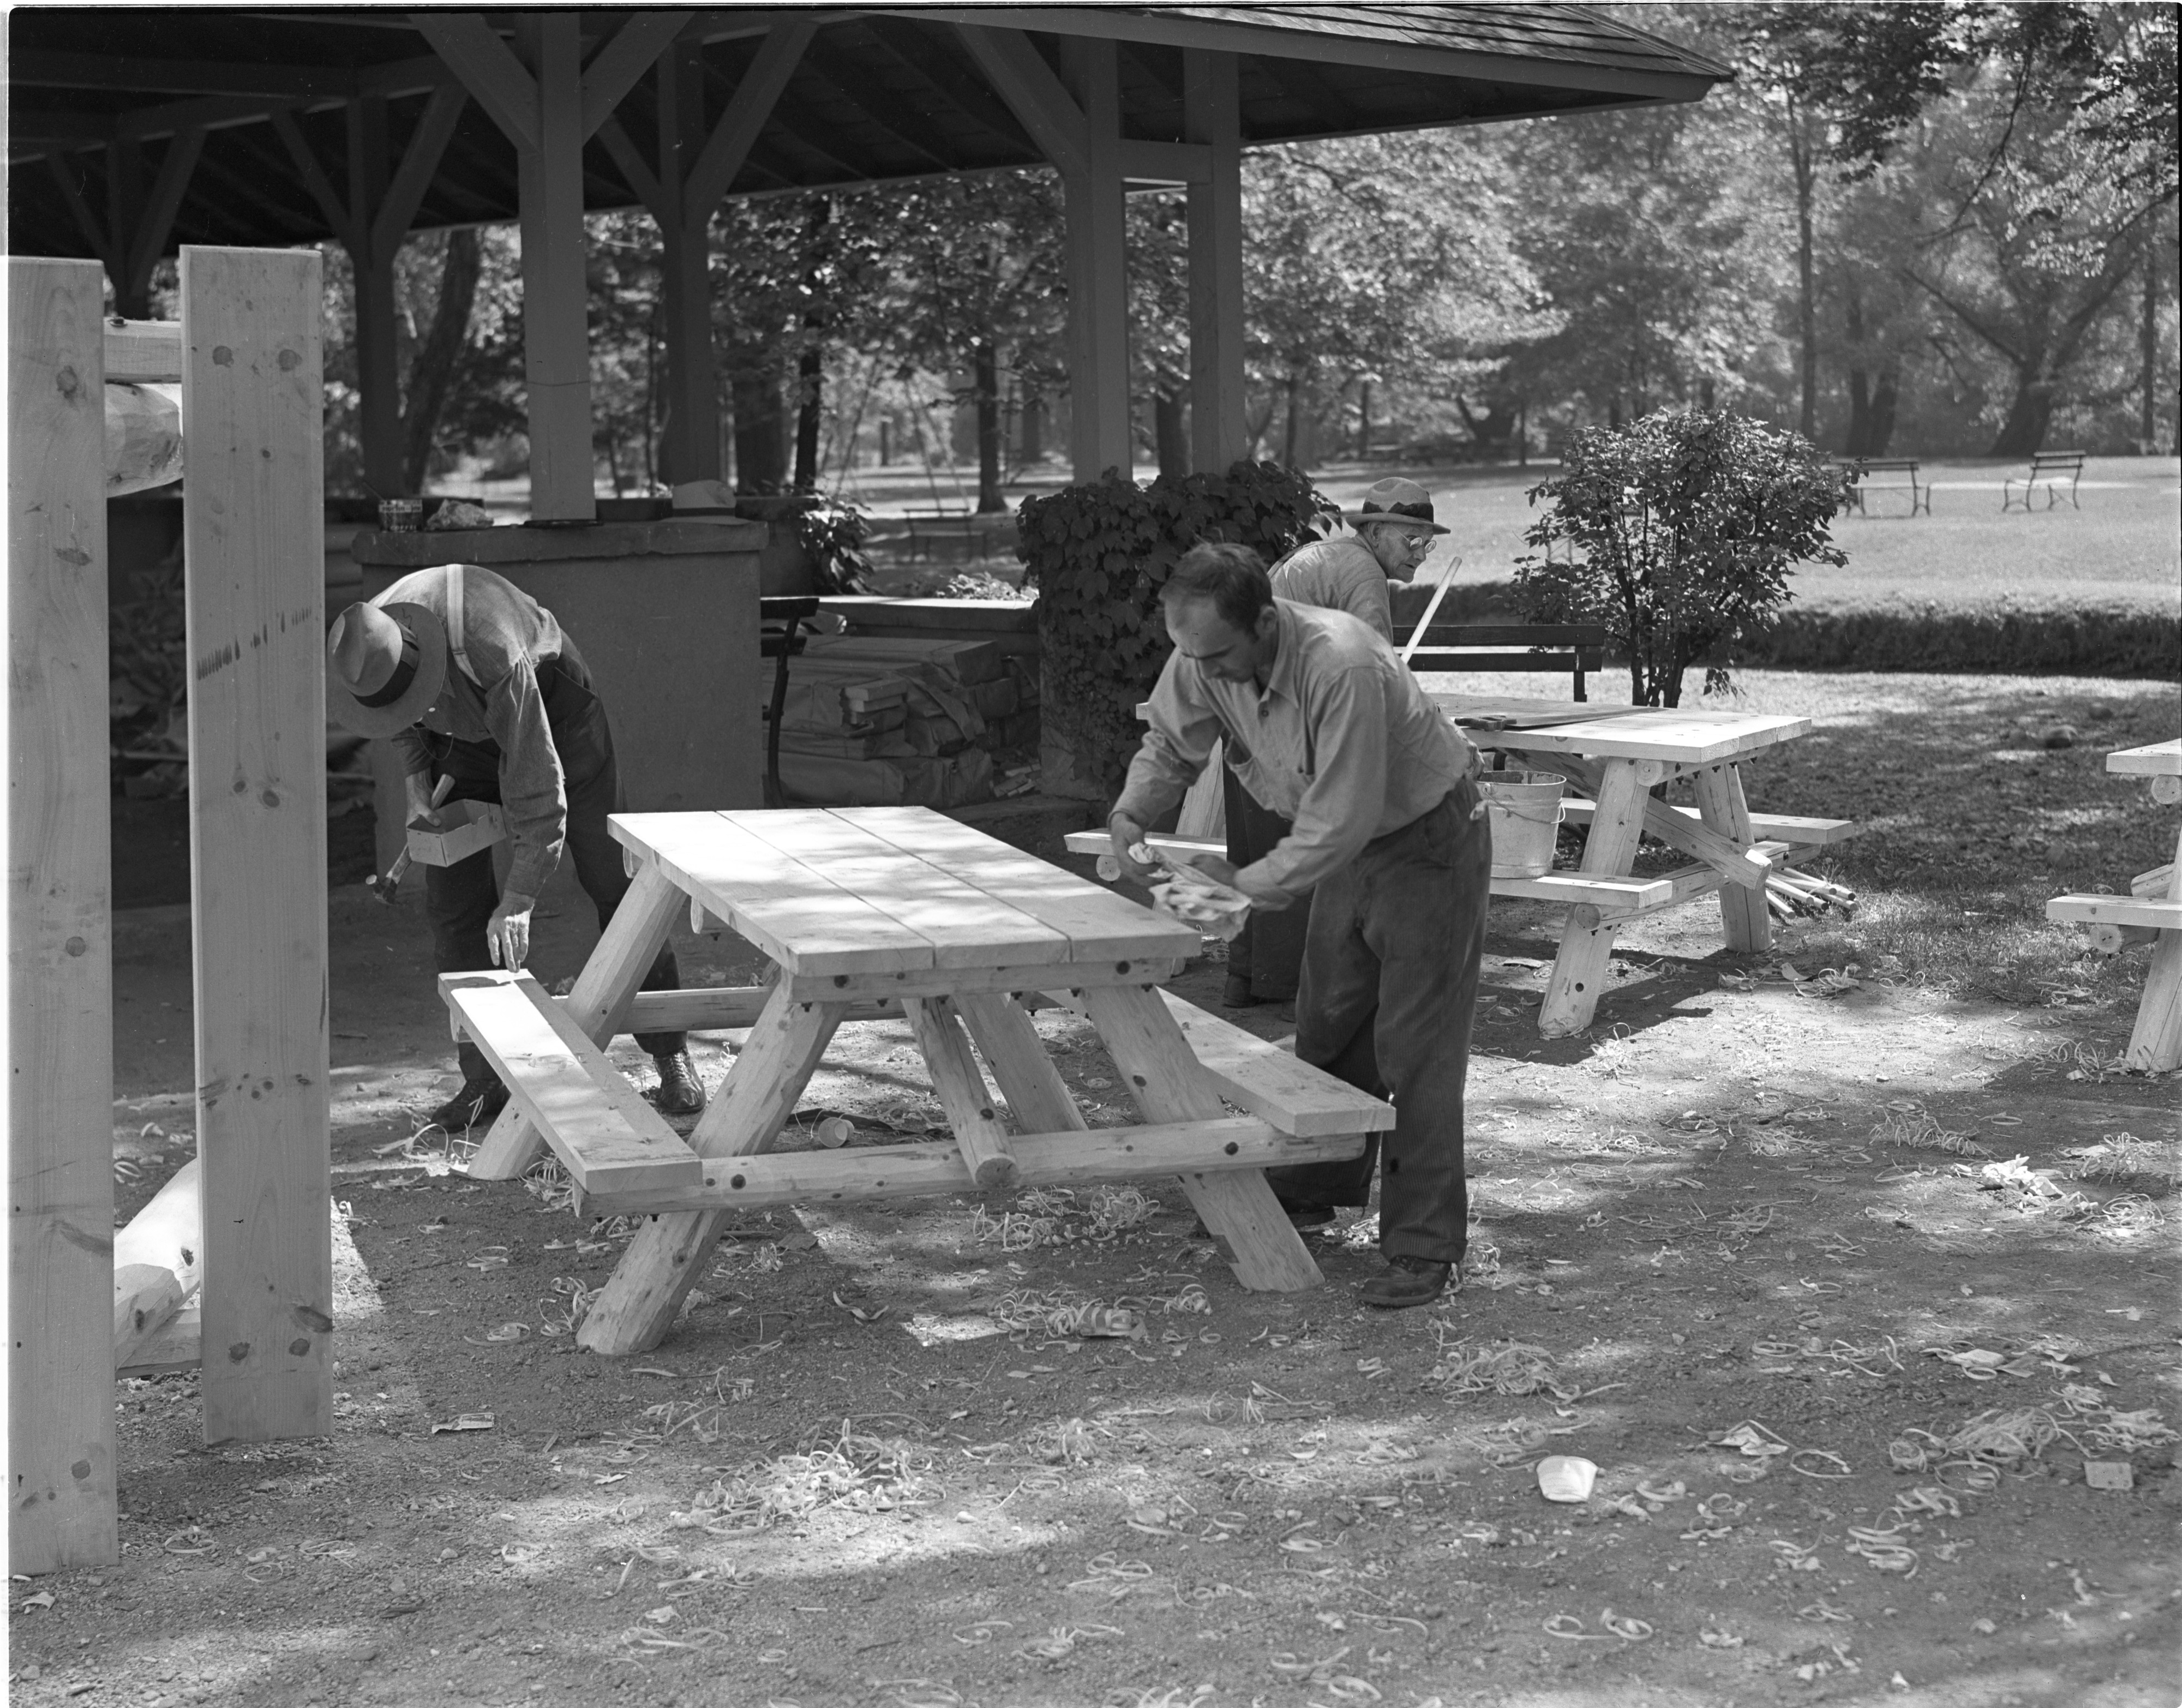 Ann Arbor Park Department Employees Assemble New Picnic Tables At Island Park, August 1939 image